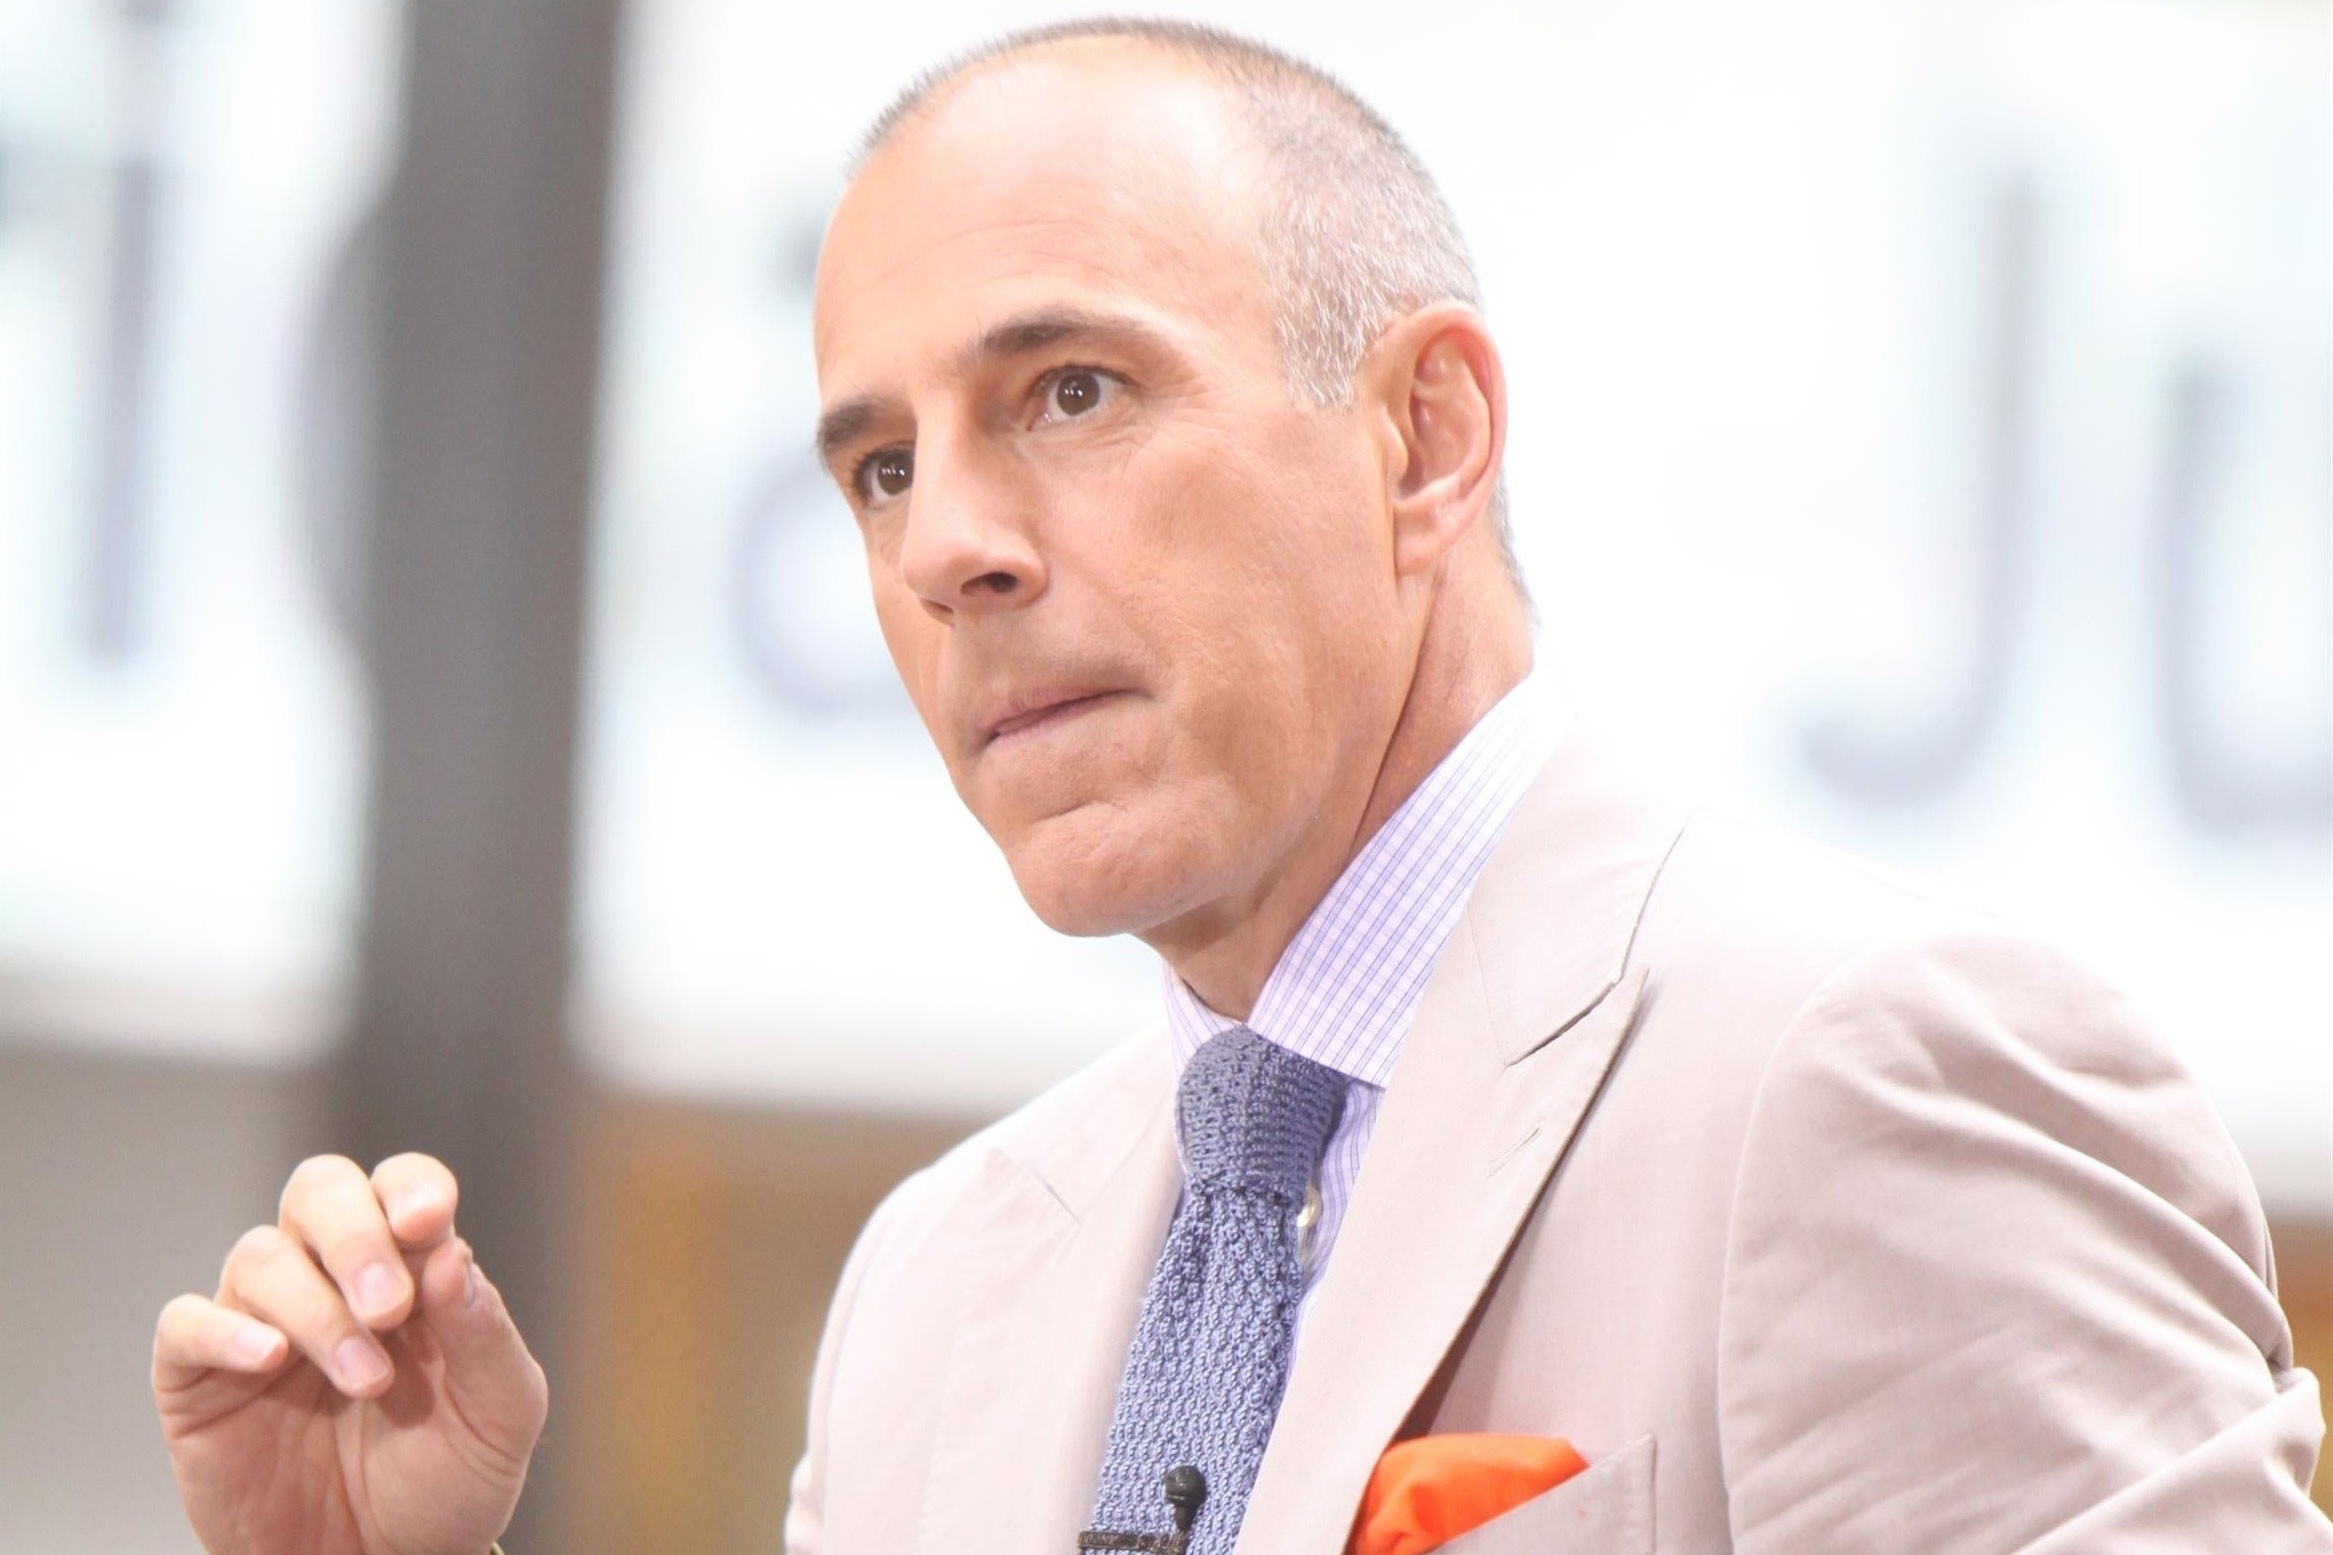 Matt lauer fired today show inappropriate sexual behavior pp